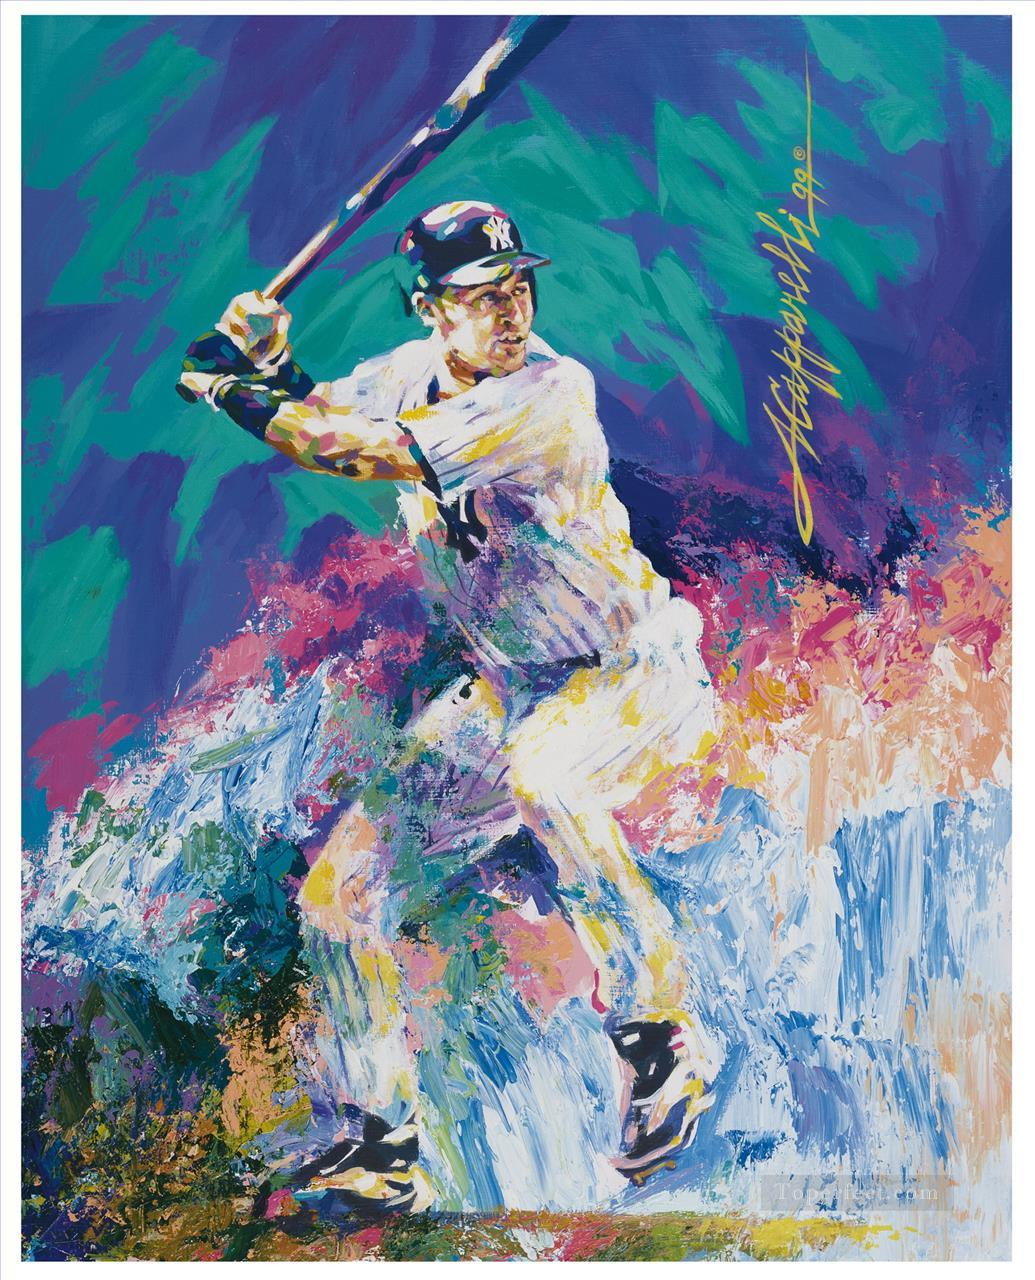 Jeter for Summit show impressionist Oil Paintings